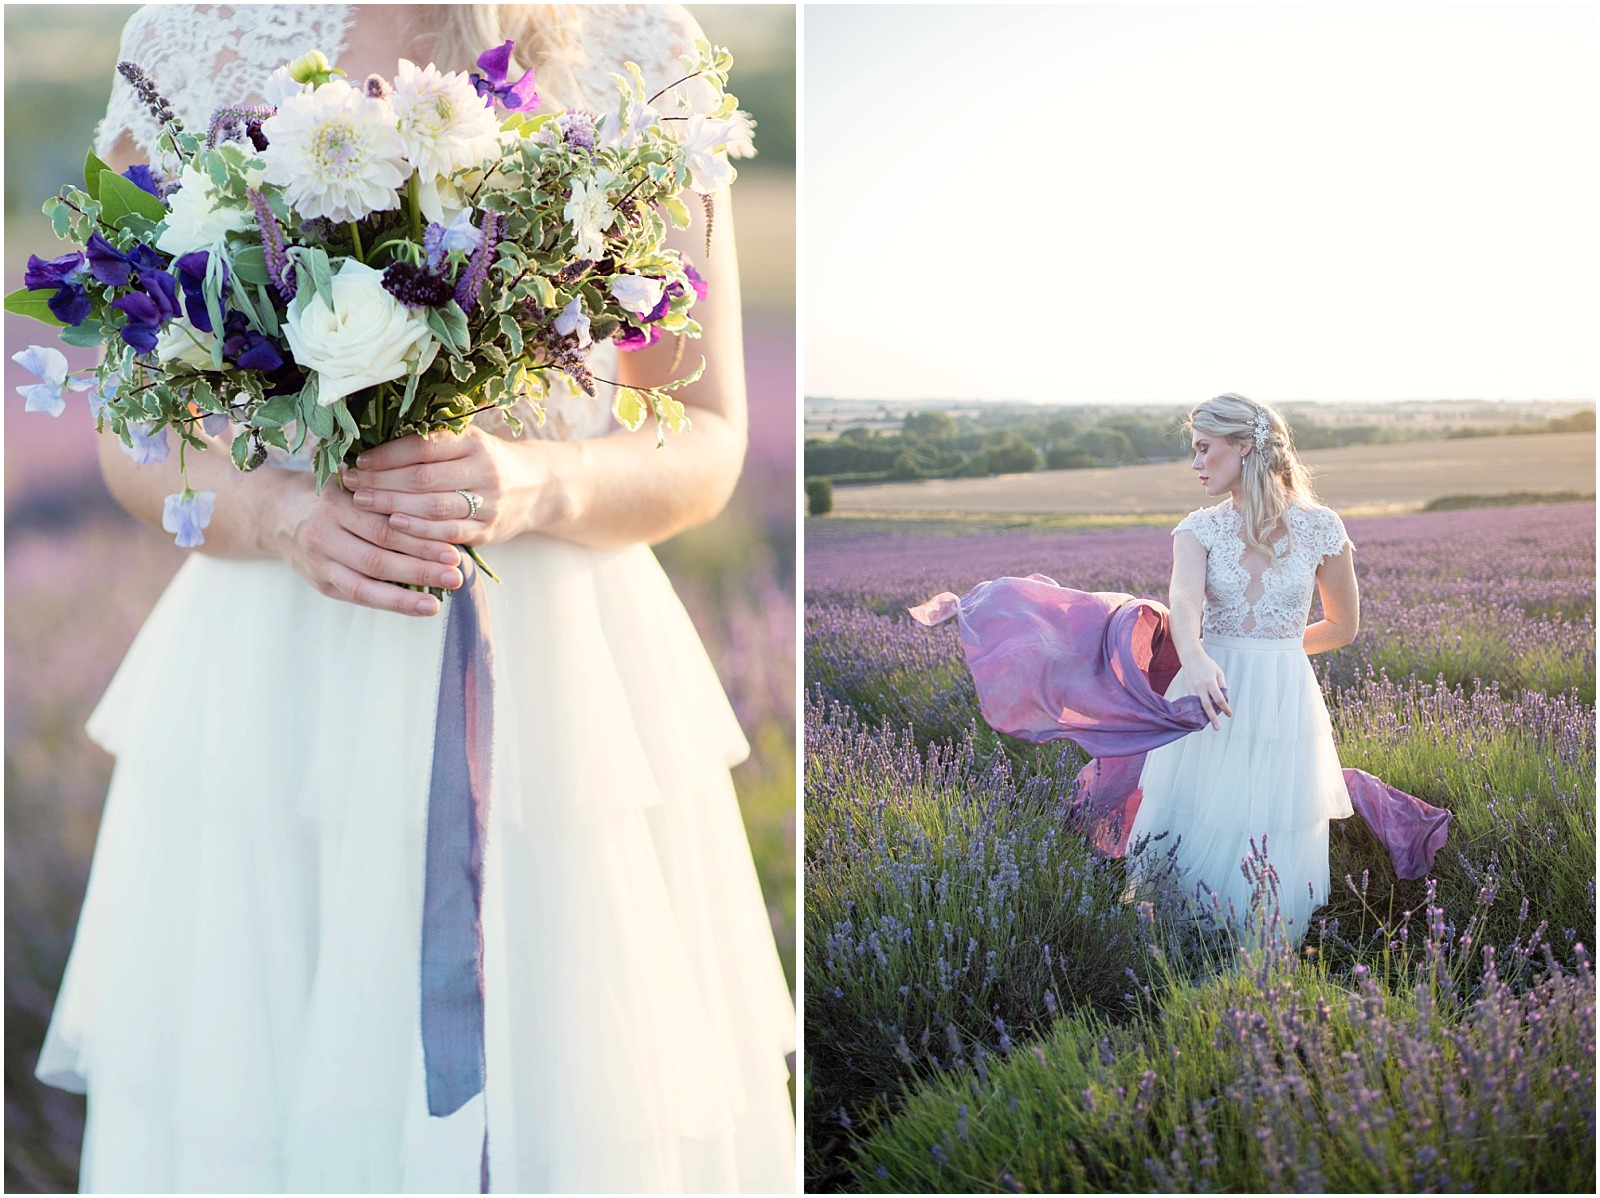 wedding bouquet by Flowers by Eve